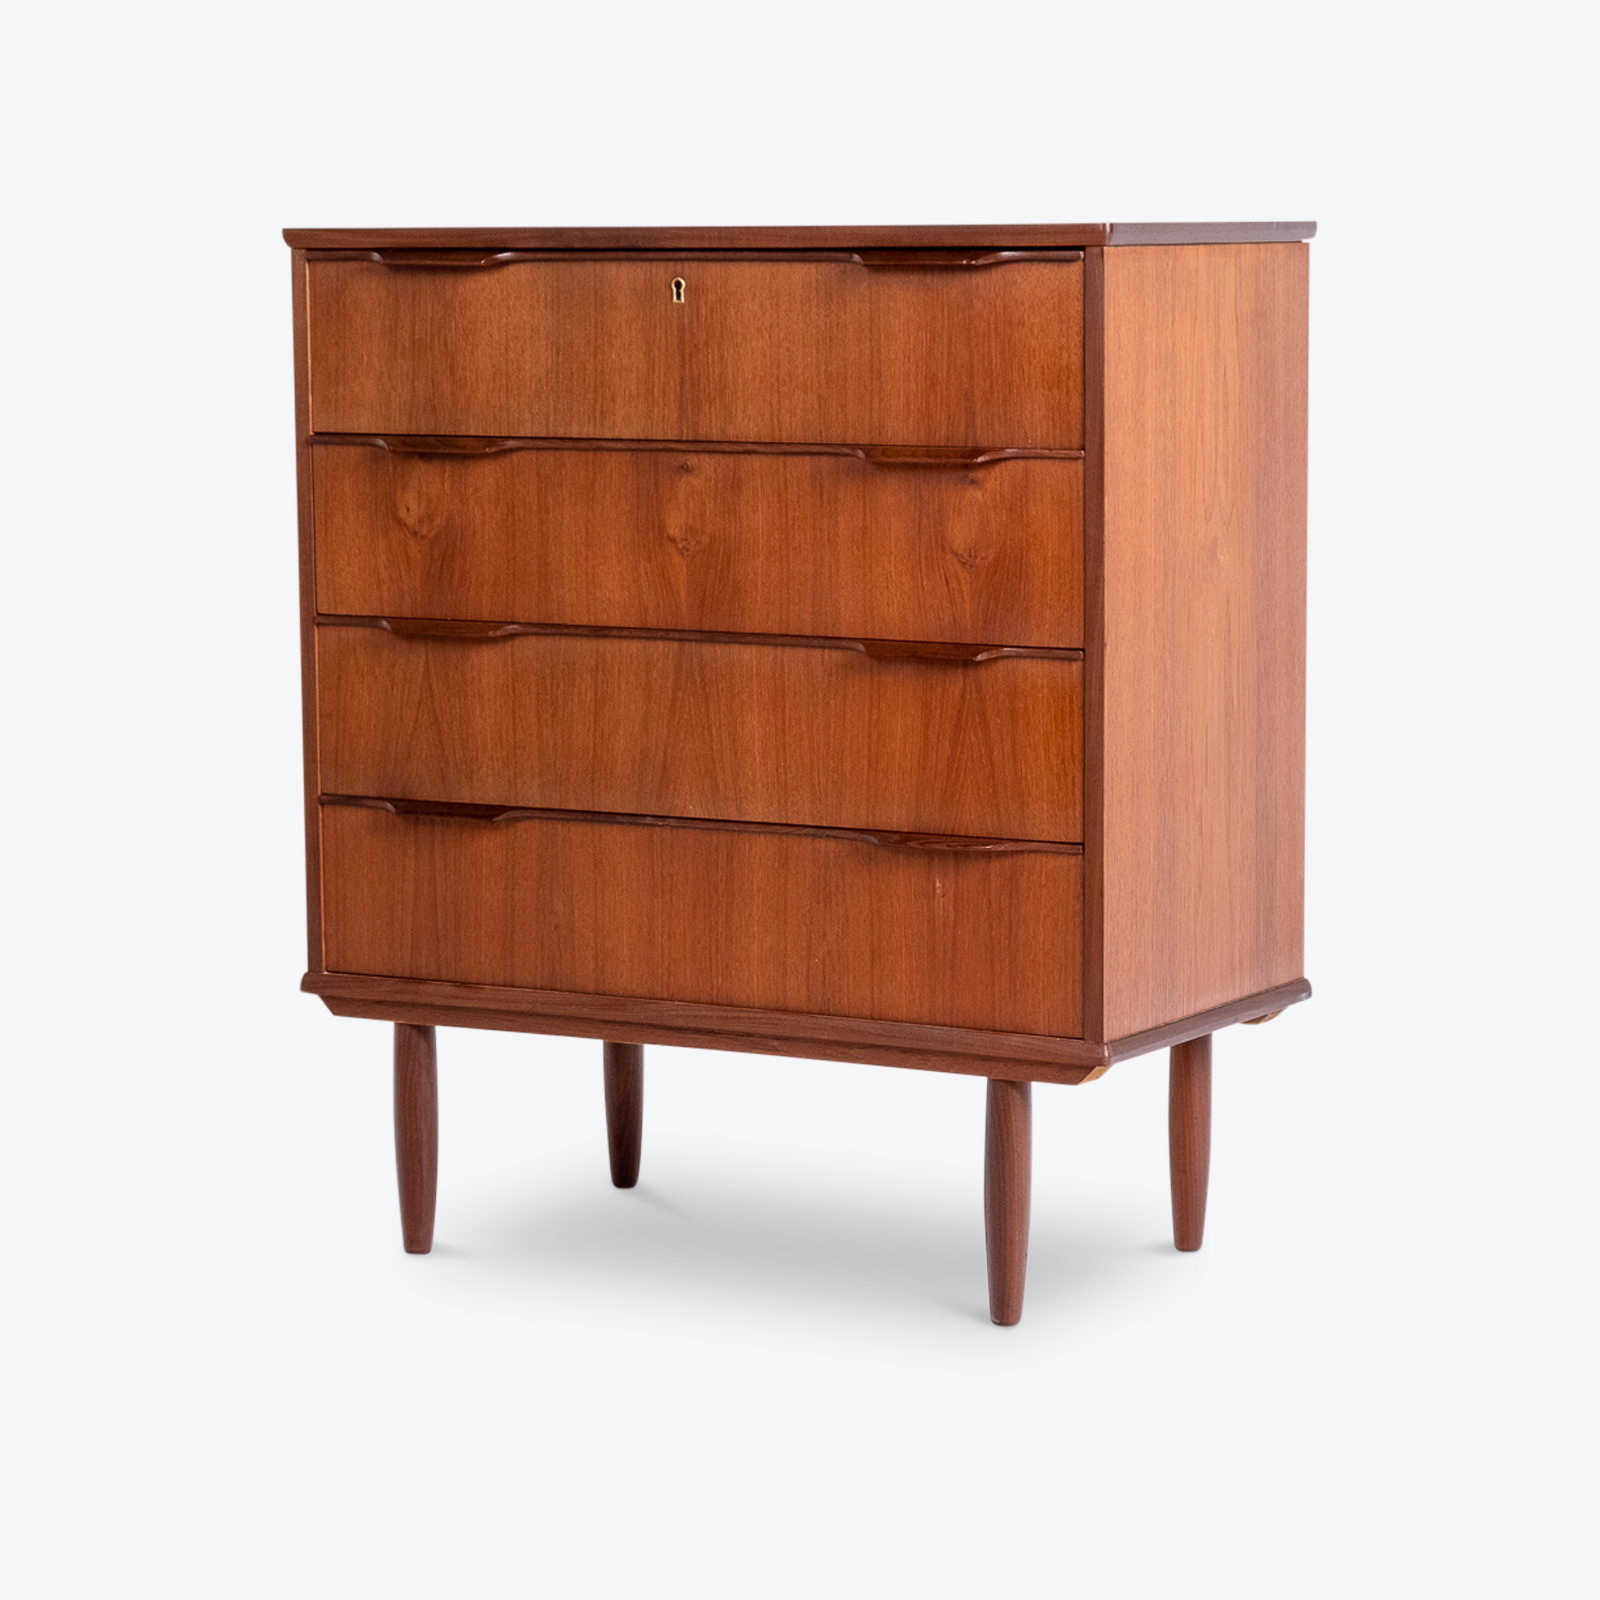 Chest Of Drawers In Teak, 1960s, Denmark4 Hero